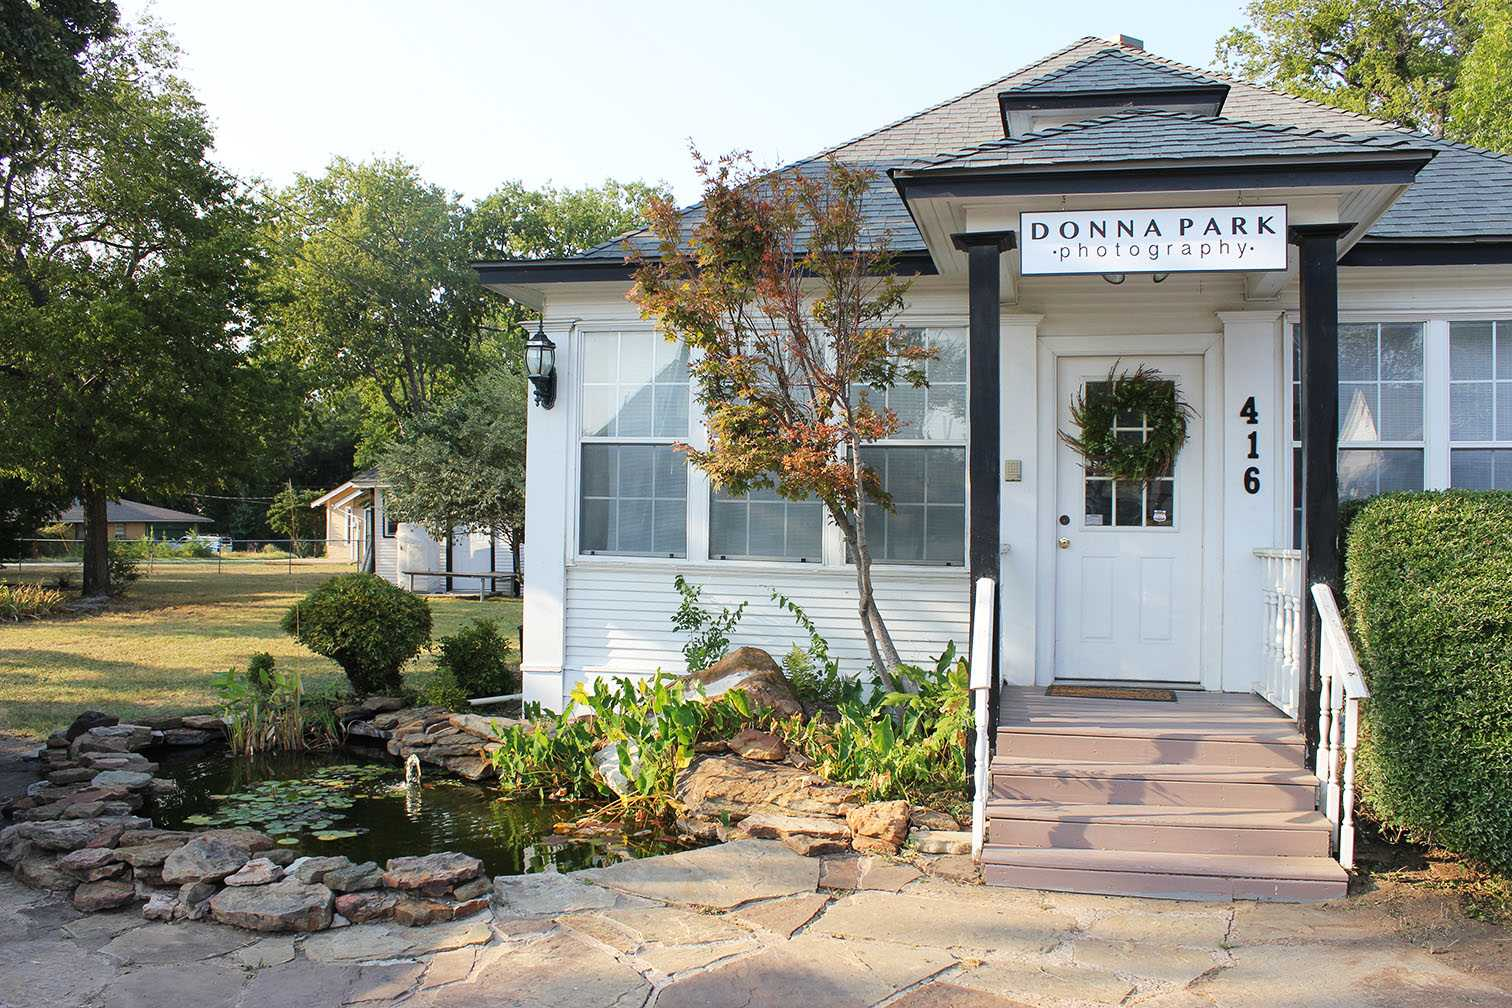 Donna Park's photography studio holds its grand opening Saturday. The studio was yet another addition to the revival of Old Town Coppell. Photo by Nicole Messer.